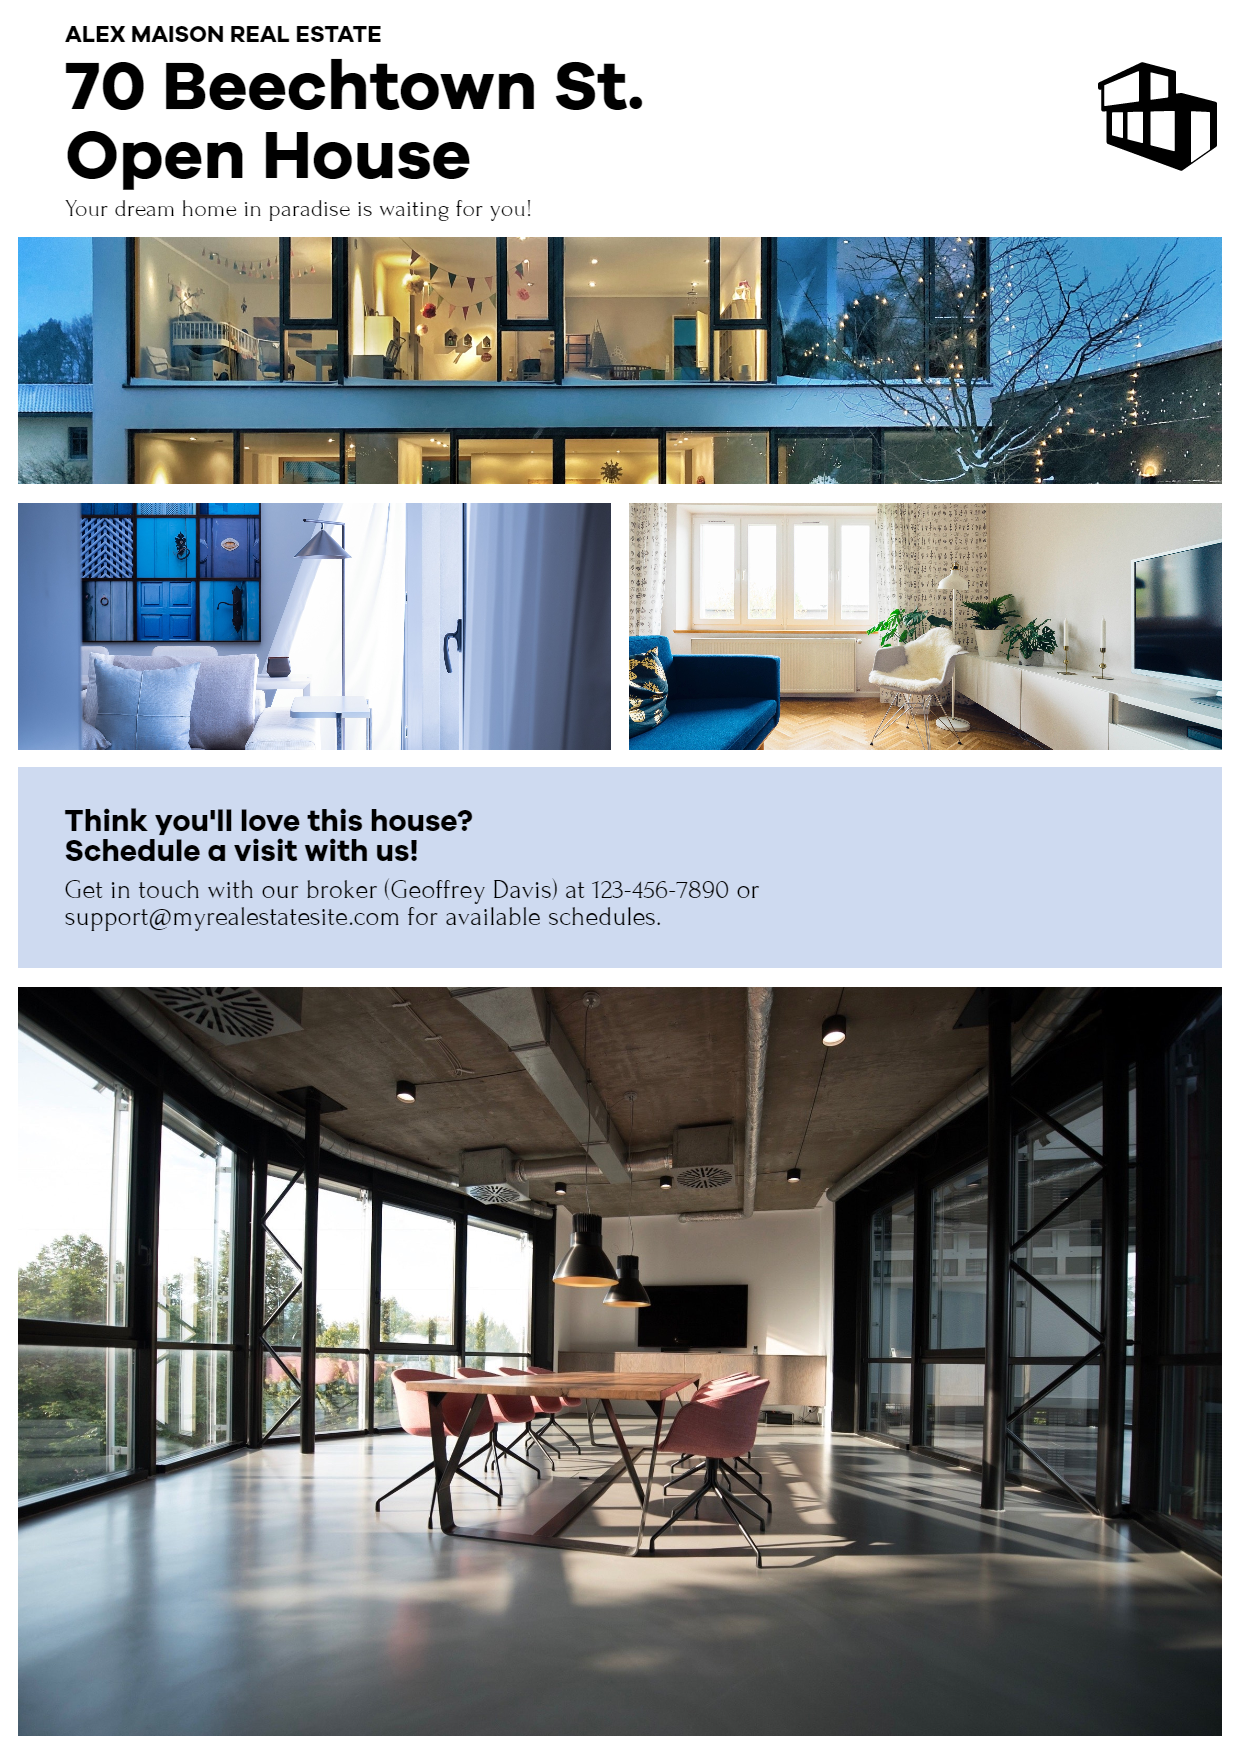 Real Estate - Modern Photo Collage Design  Template